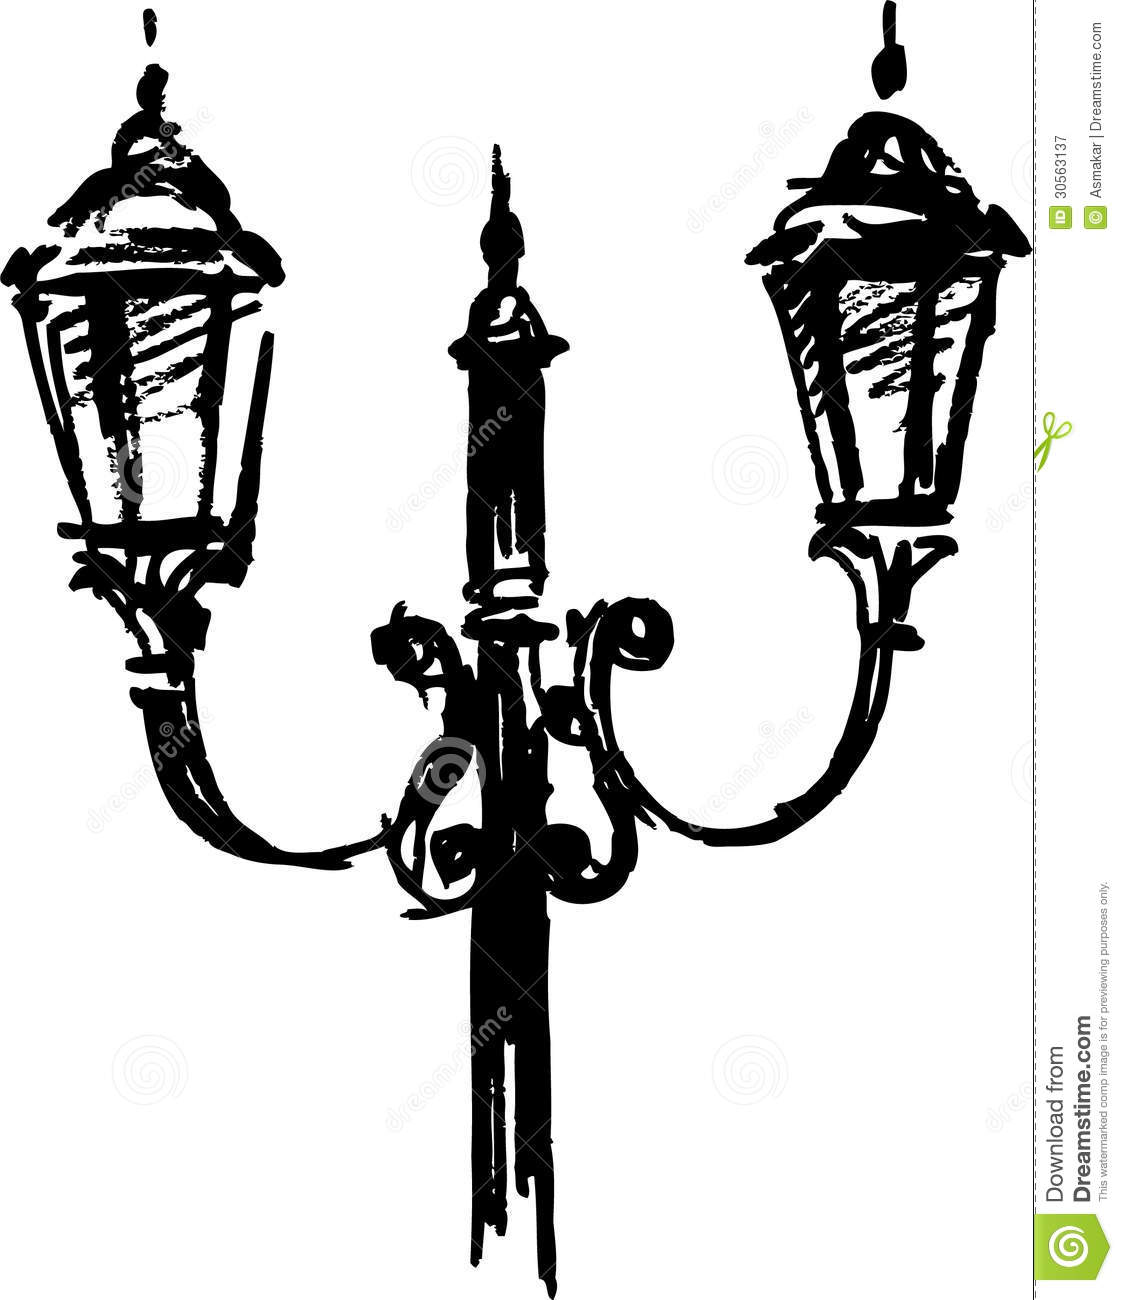 Street lamp stock vector. Illustration of light, dual - 30563137 for Street Light Sketch  75tgx